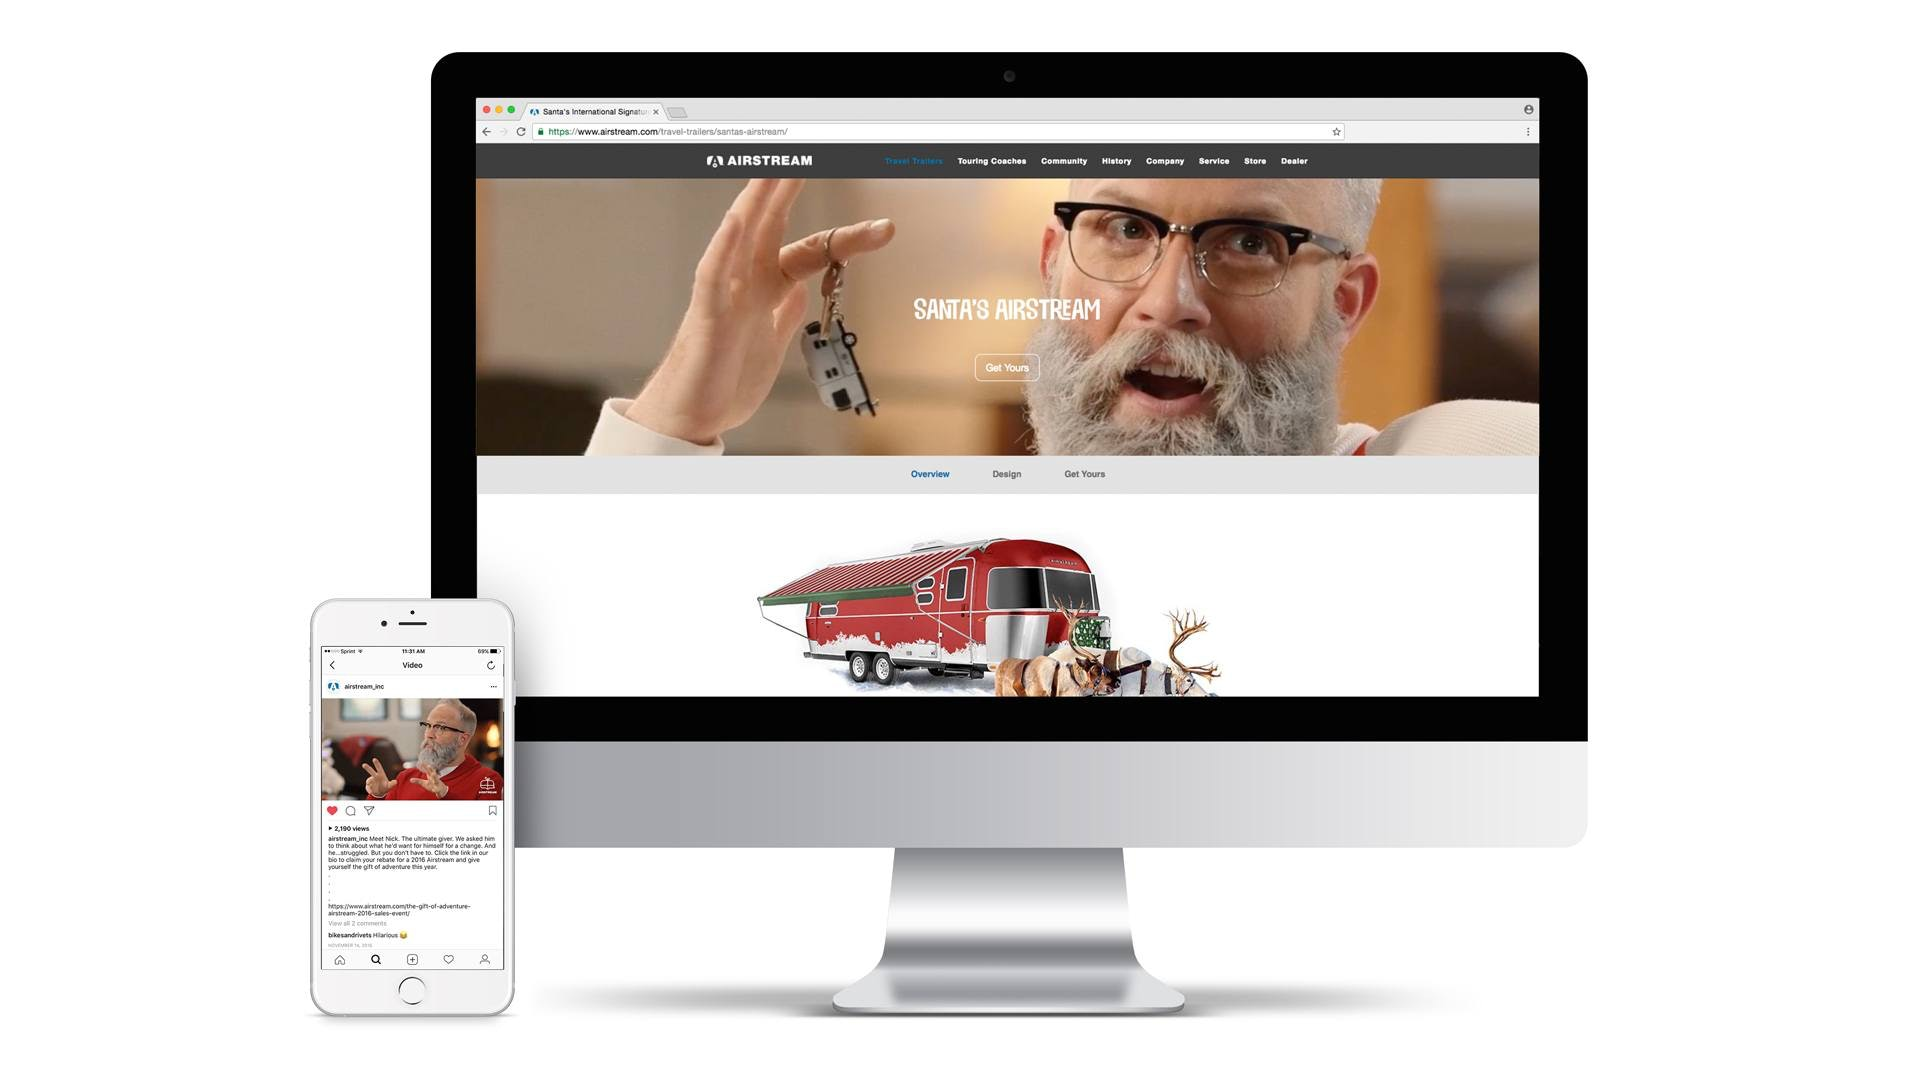 airstream holiday marketing campaign shown on desktop and mobile